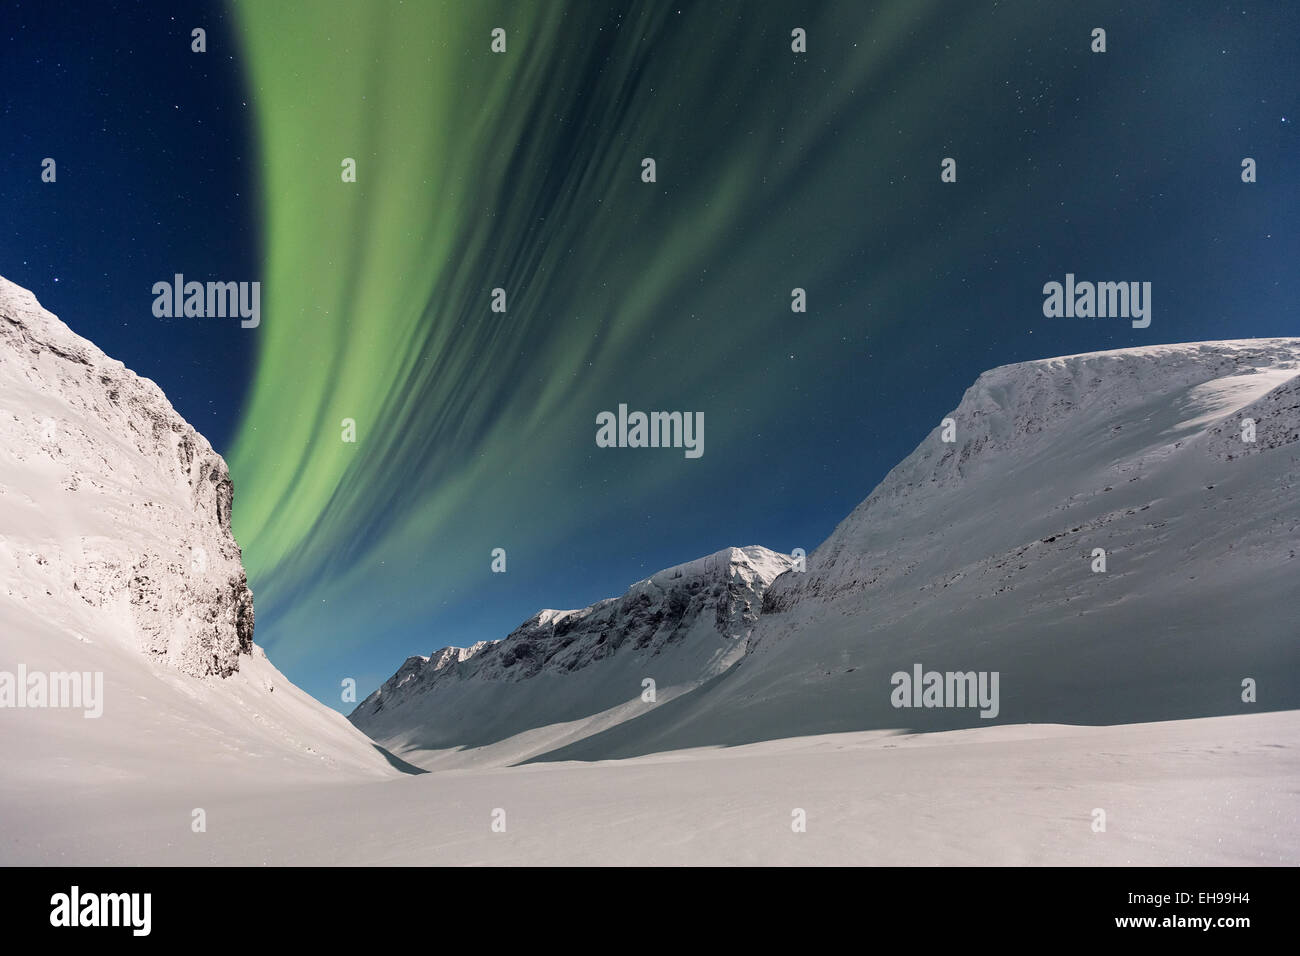 The northern lights seen at Nallostugan, Kiruna, Sweden, Europe, EU - Stock Image